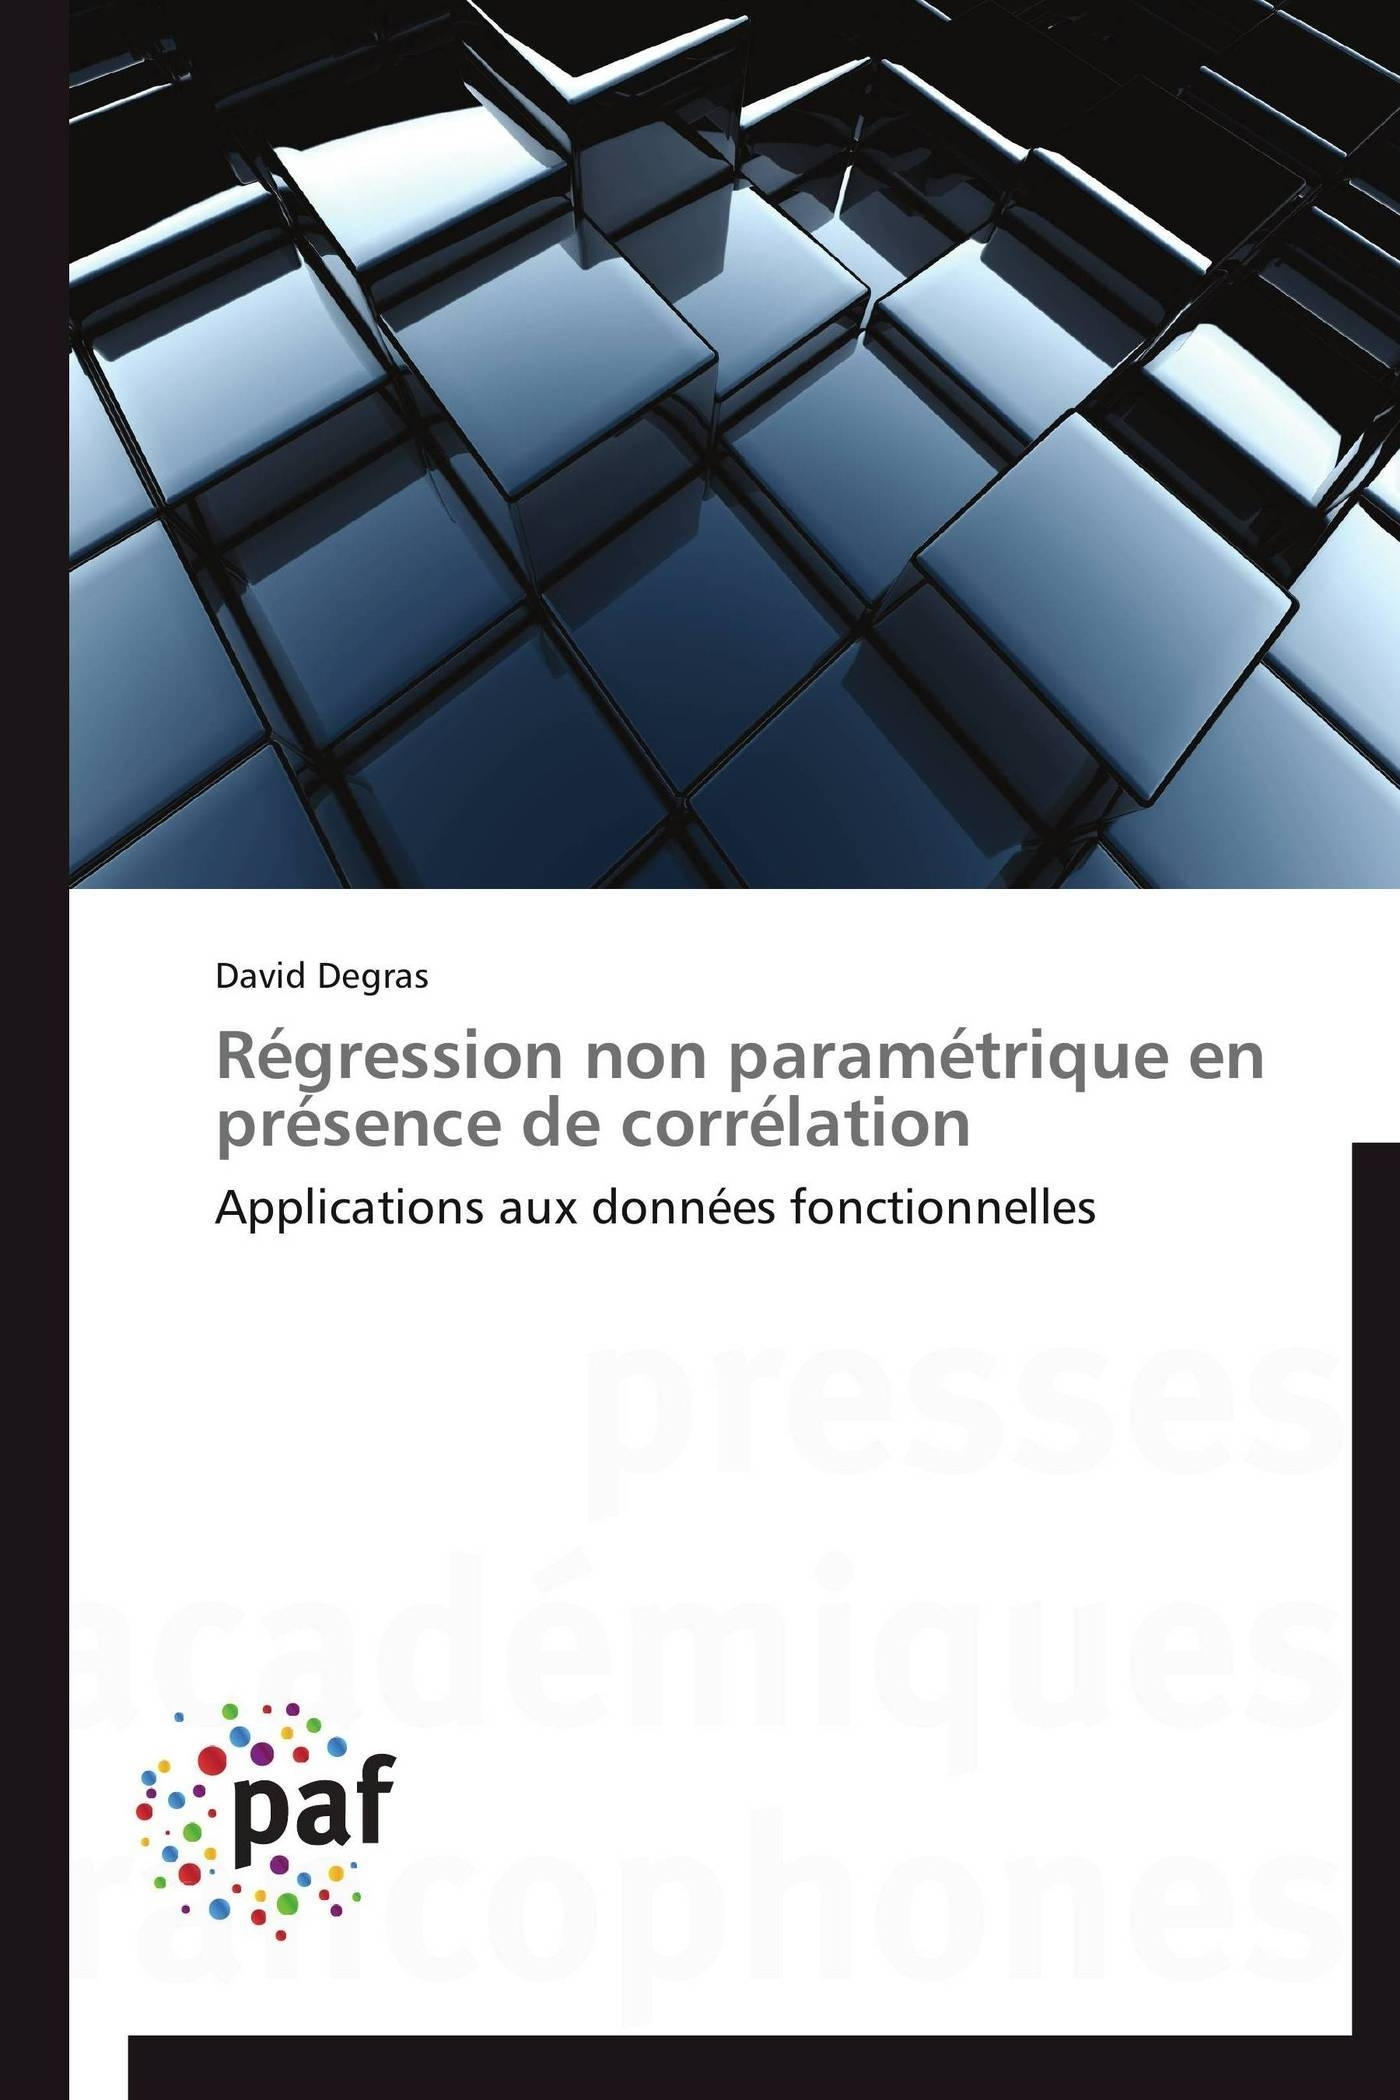 REGRESSION NON PARAMETRIQUE EN PRESENCE DE  CORRELATION